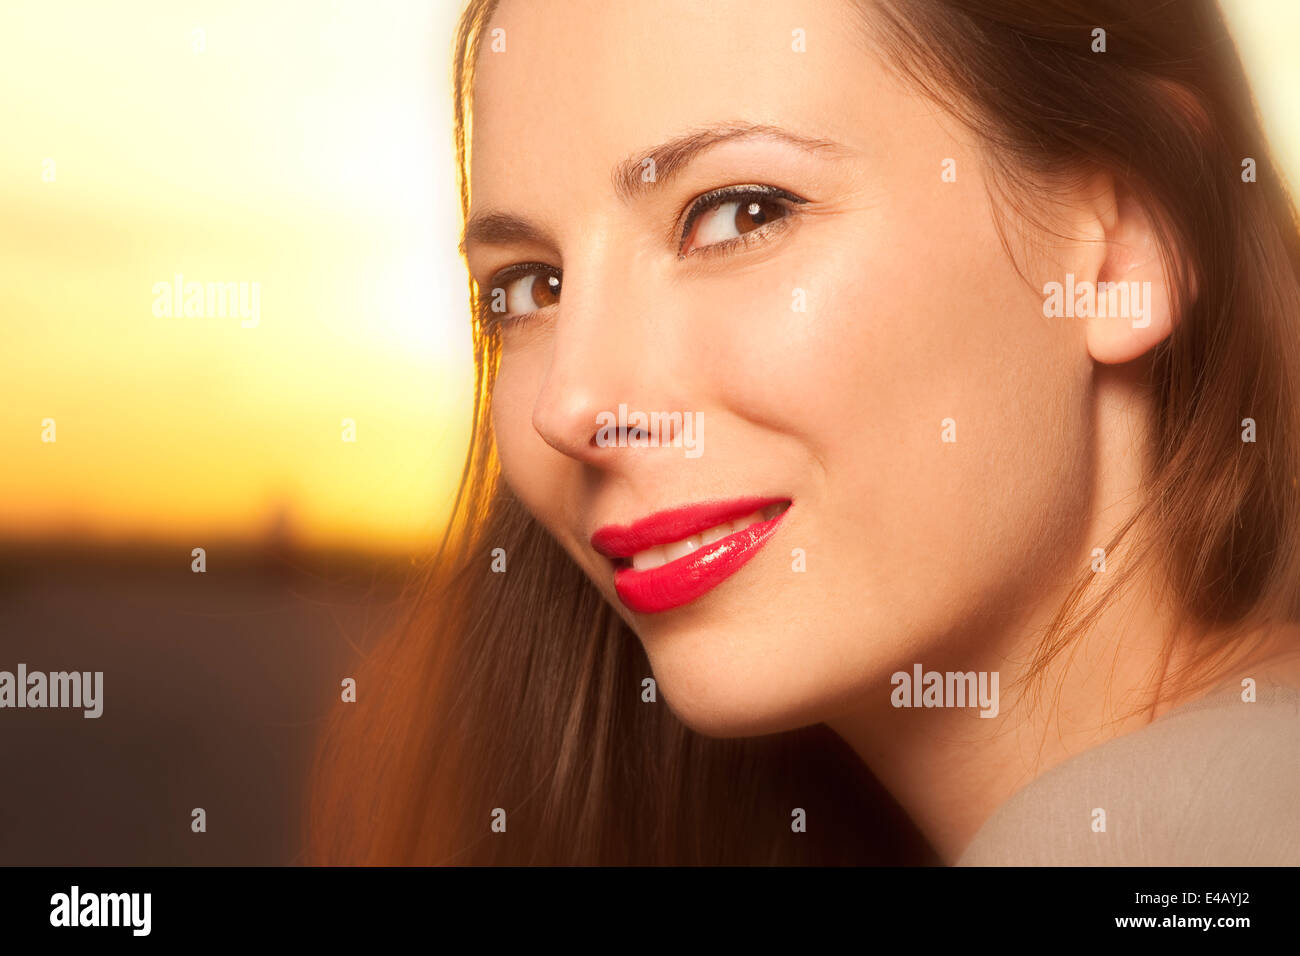 Belle, happy young woman in sunlight Photo Stock